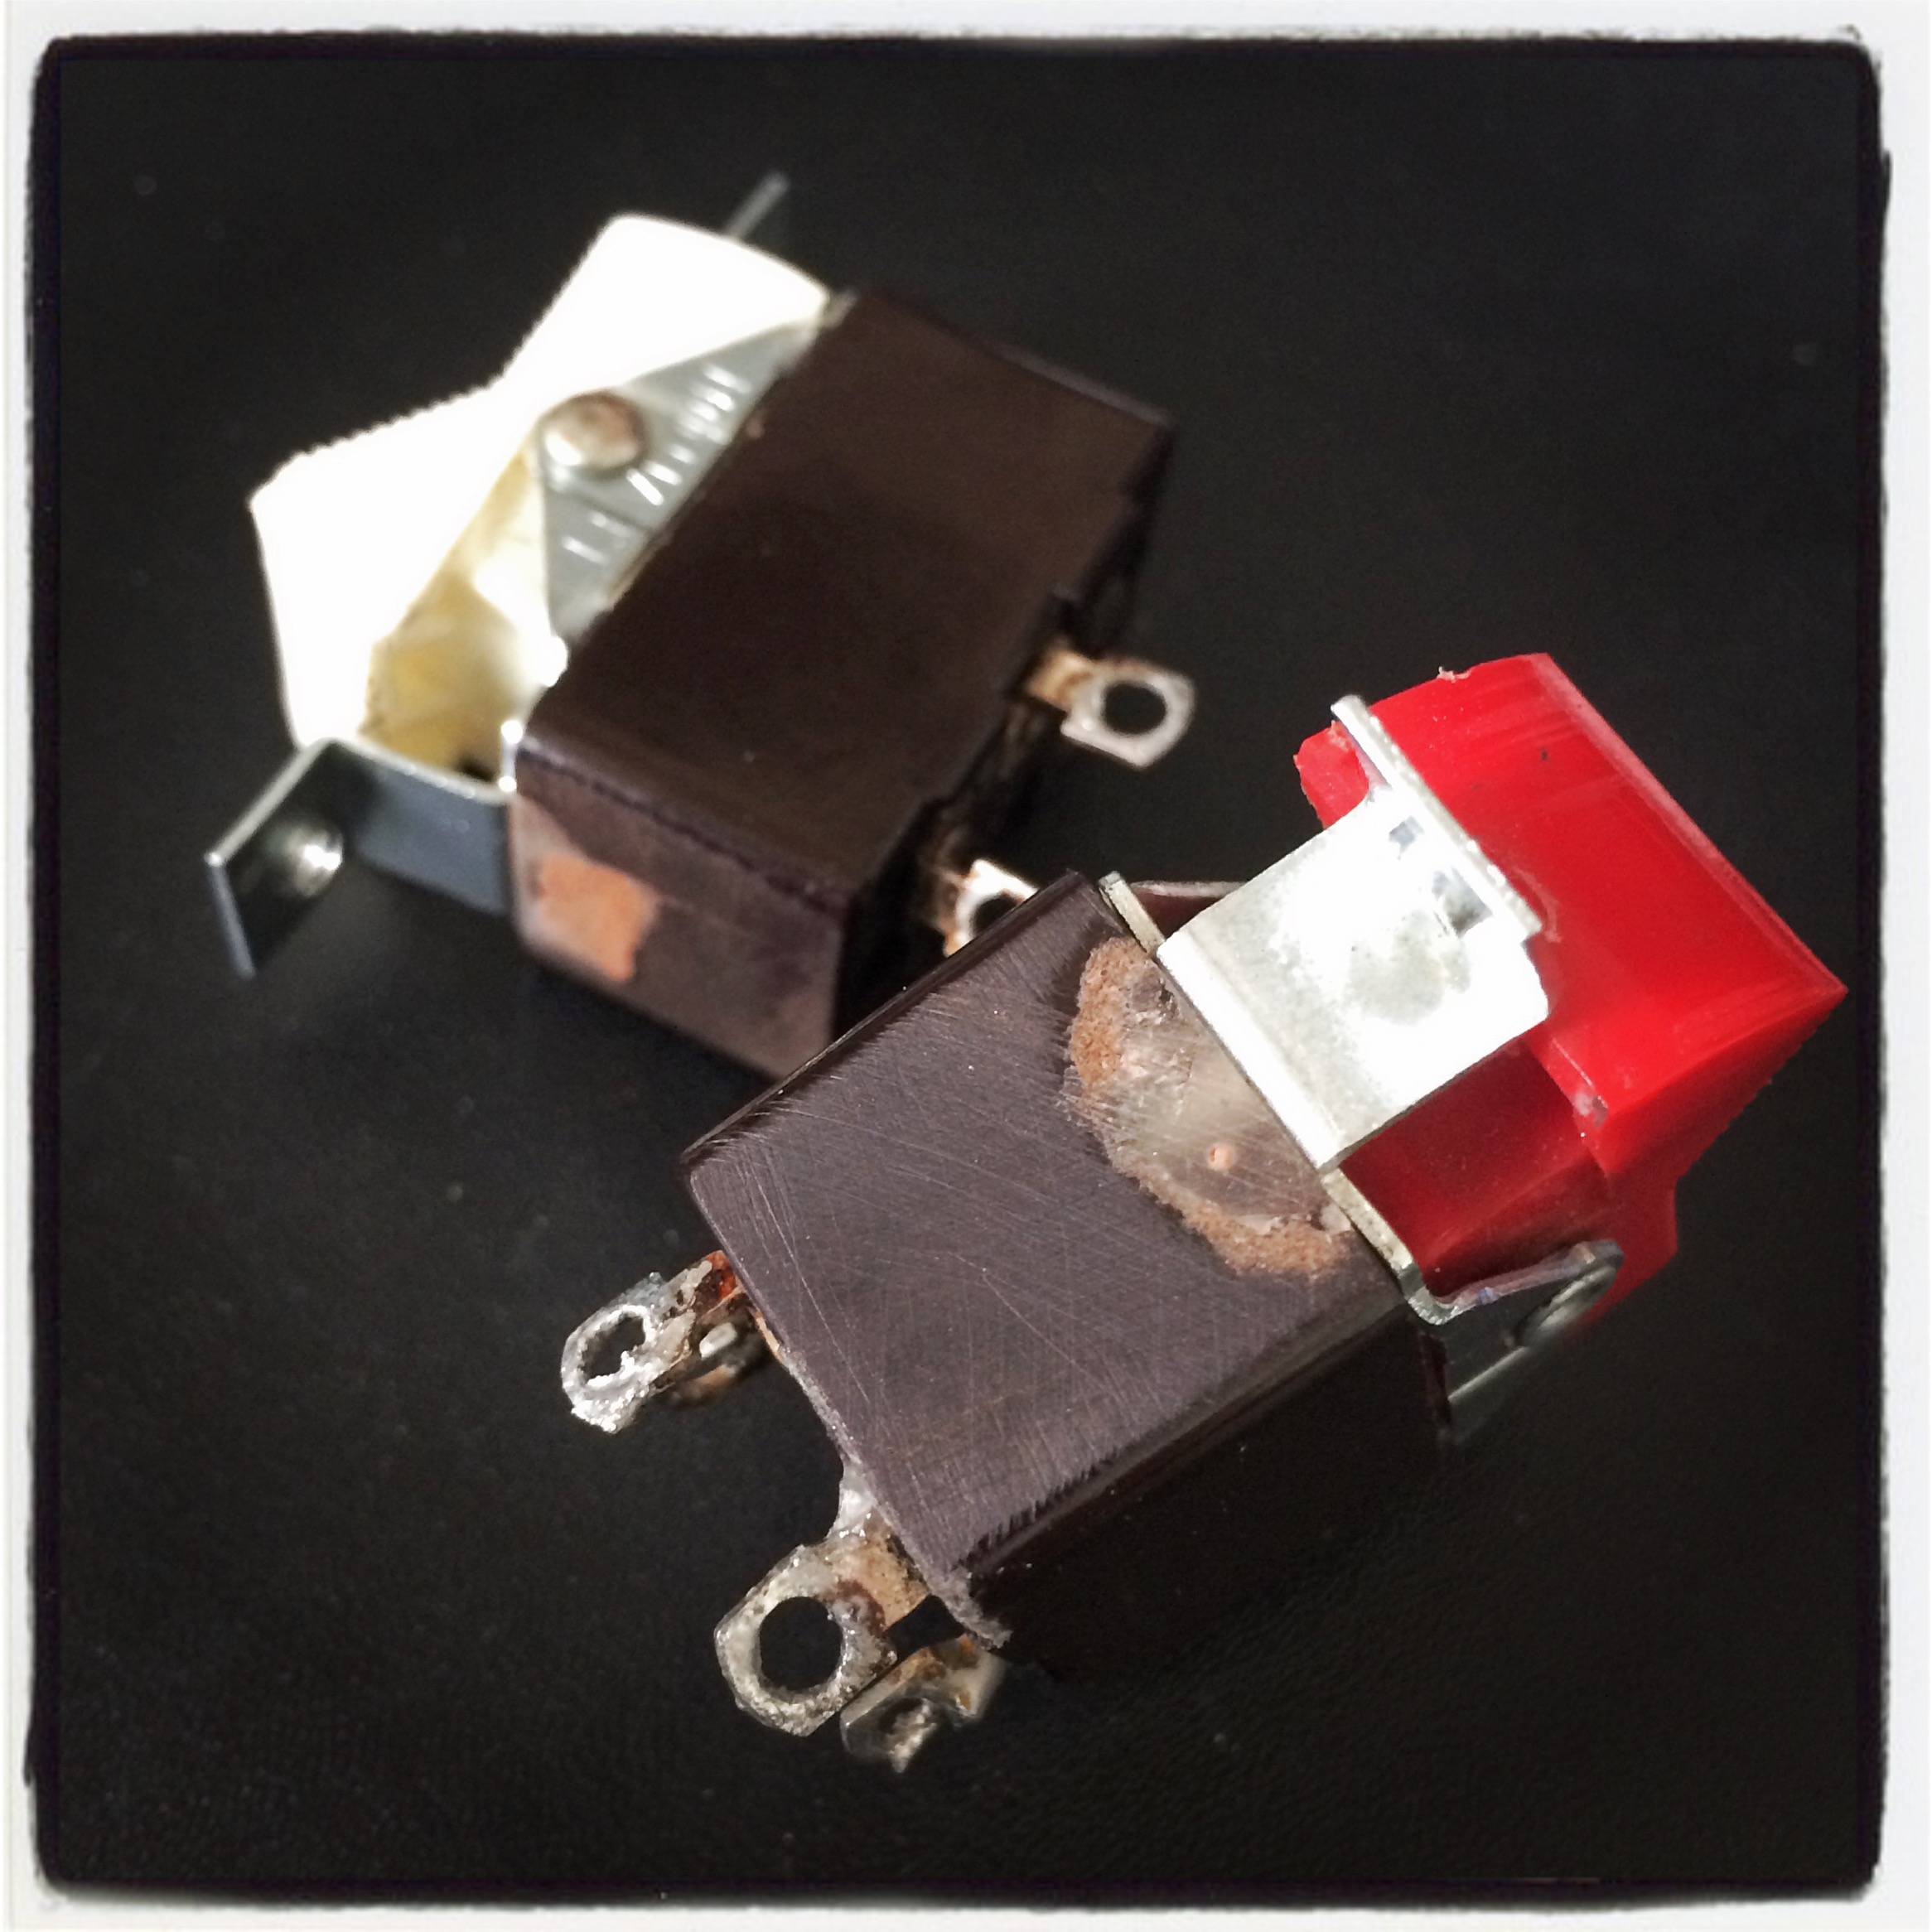 Rocker switches repaired with epoxy and machine screws, replacing broken Bakelite and rivets.